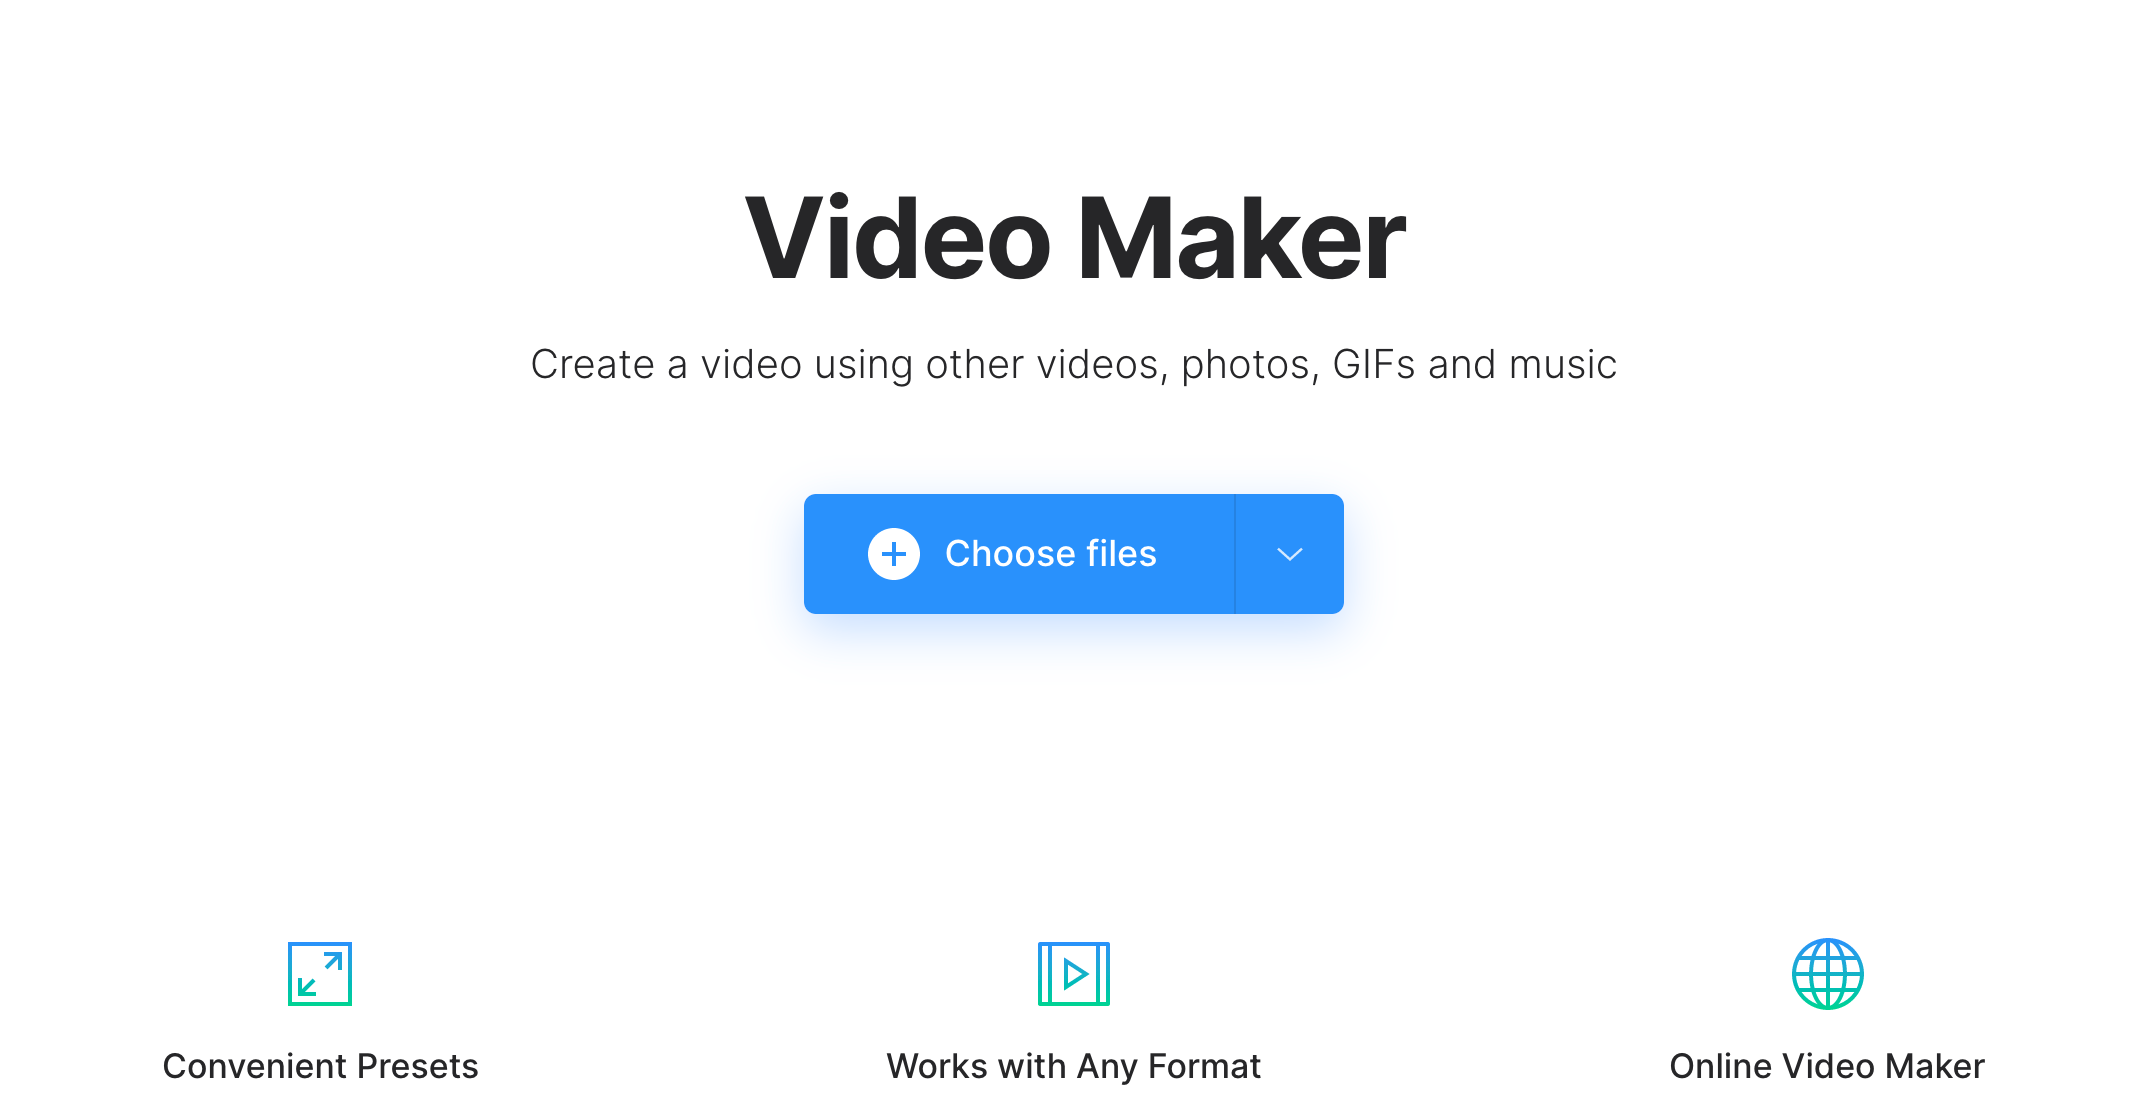 Upload image to add song to YouTube